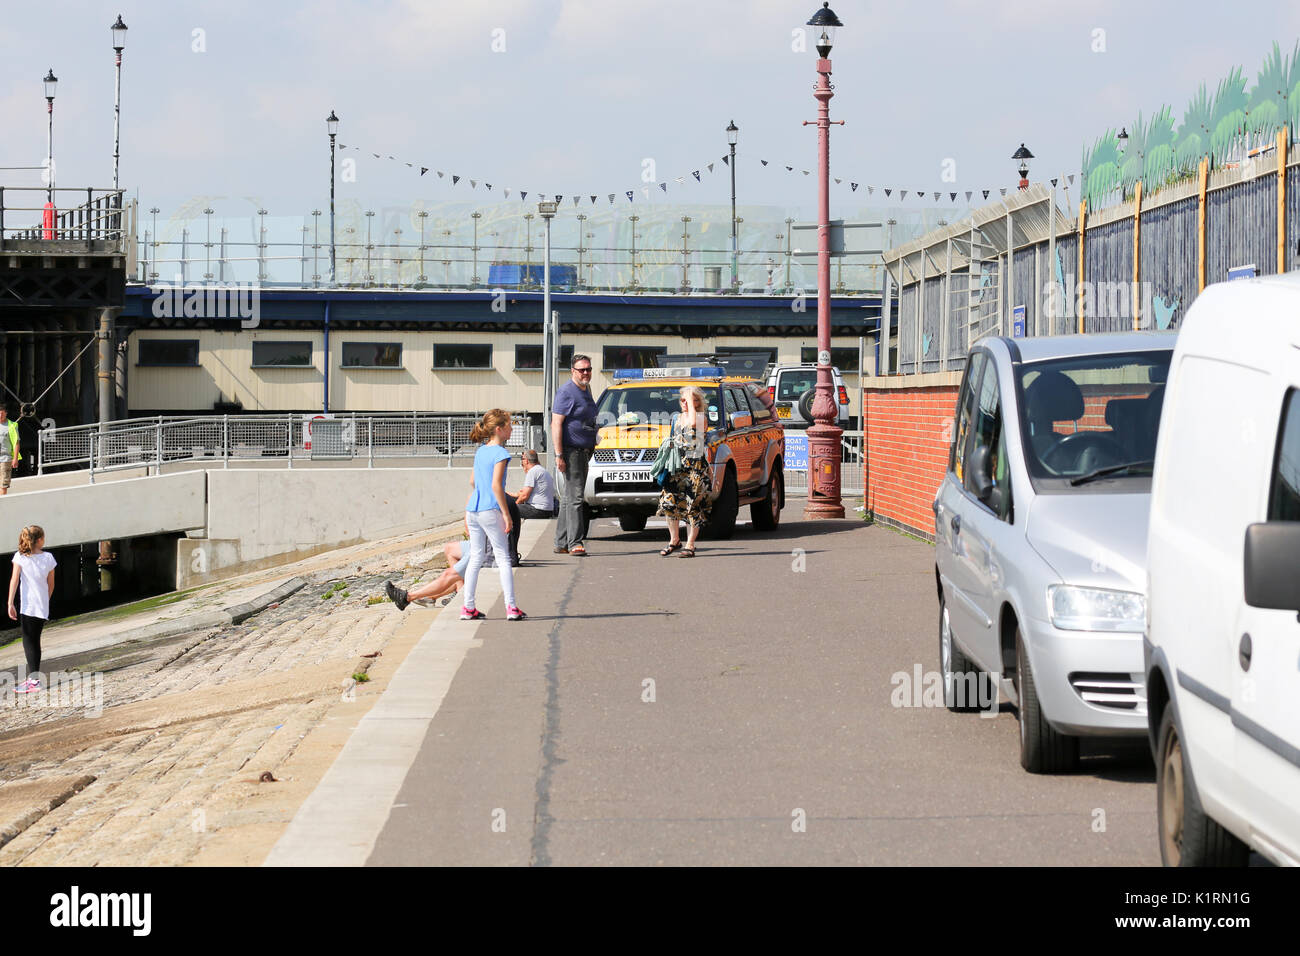 Southend-on-Sea, UK. 27th Aug, 2017. Shortly after 11am local time, Southend pier is evacuated for a suspicious object beneath the pier. HM Coastguard on the scene. Unconfirmed report, object was a concrete block wrapped in silver duct tape. Pier reopens just before 12pm. Credit: Penelope Barritt/Alamy Live News - Stock Image